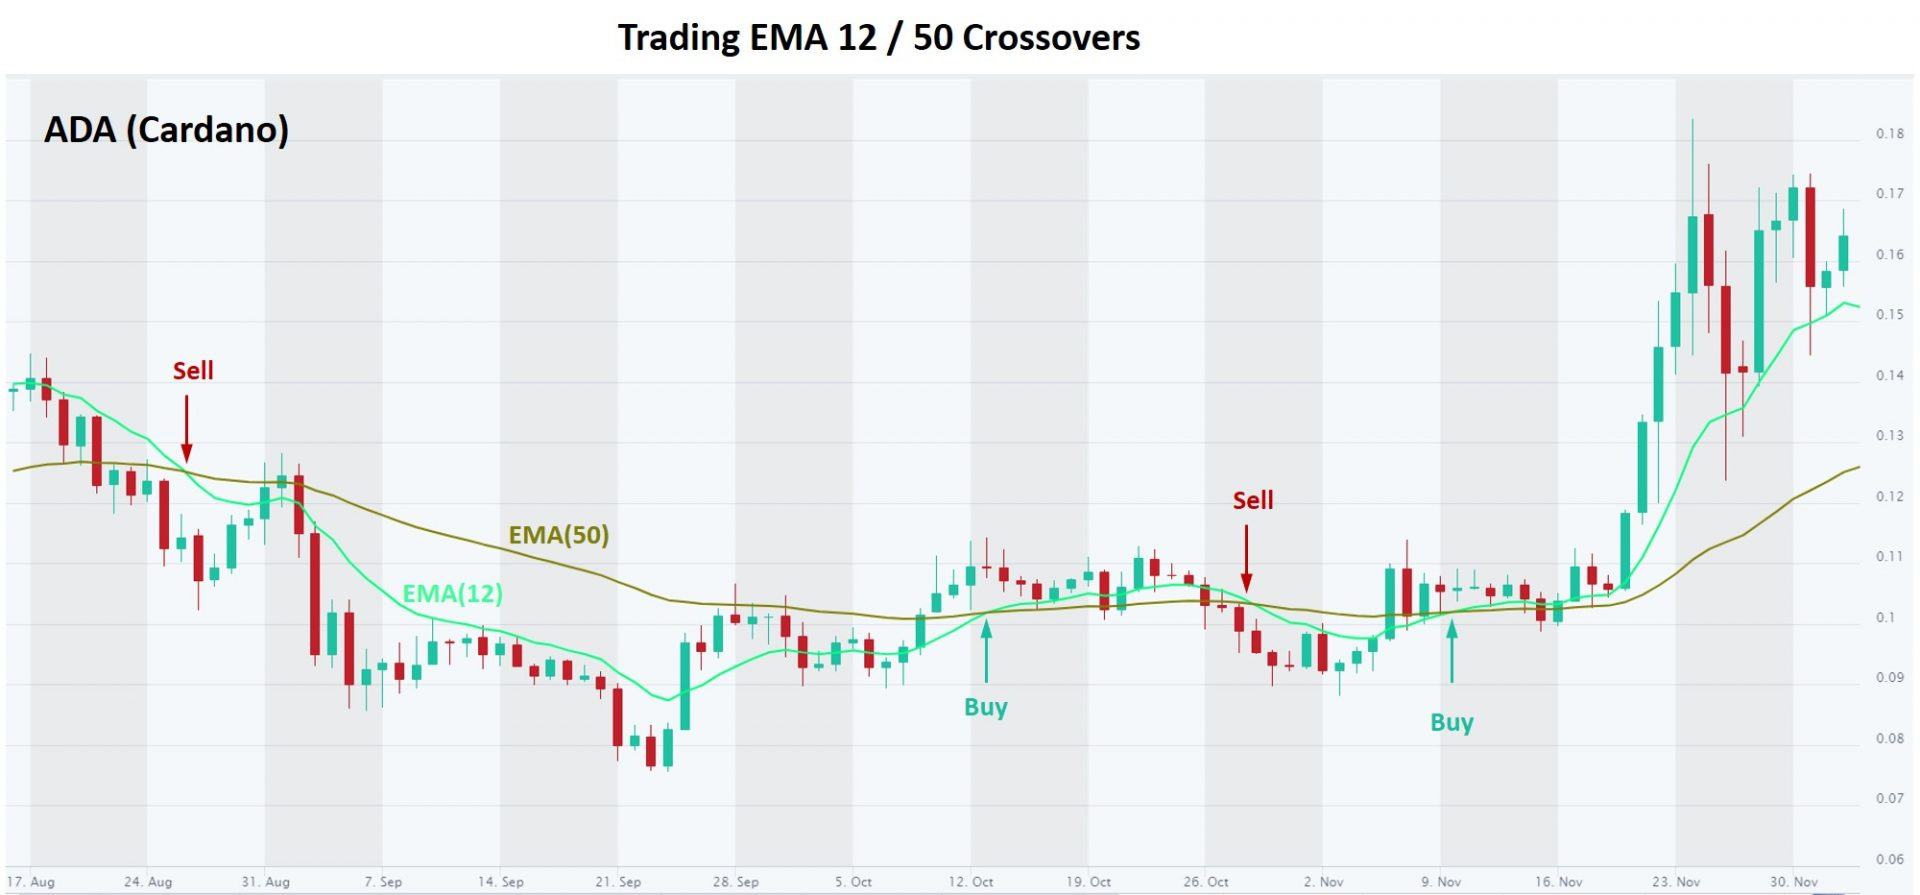 Trading EMA 12 and EMA 50 crossovers